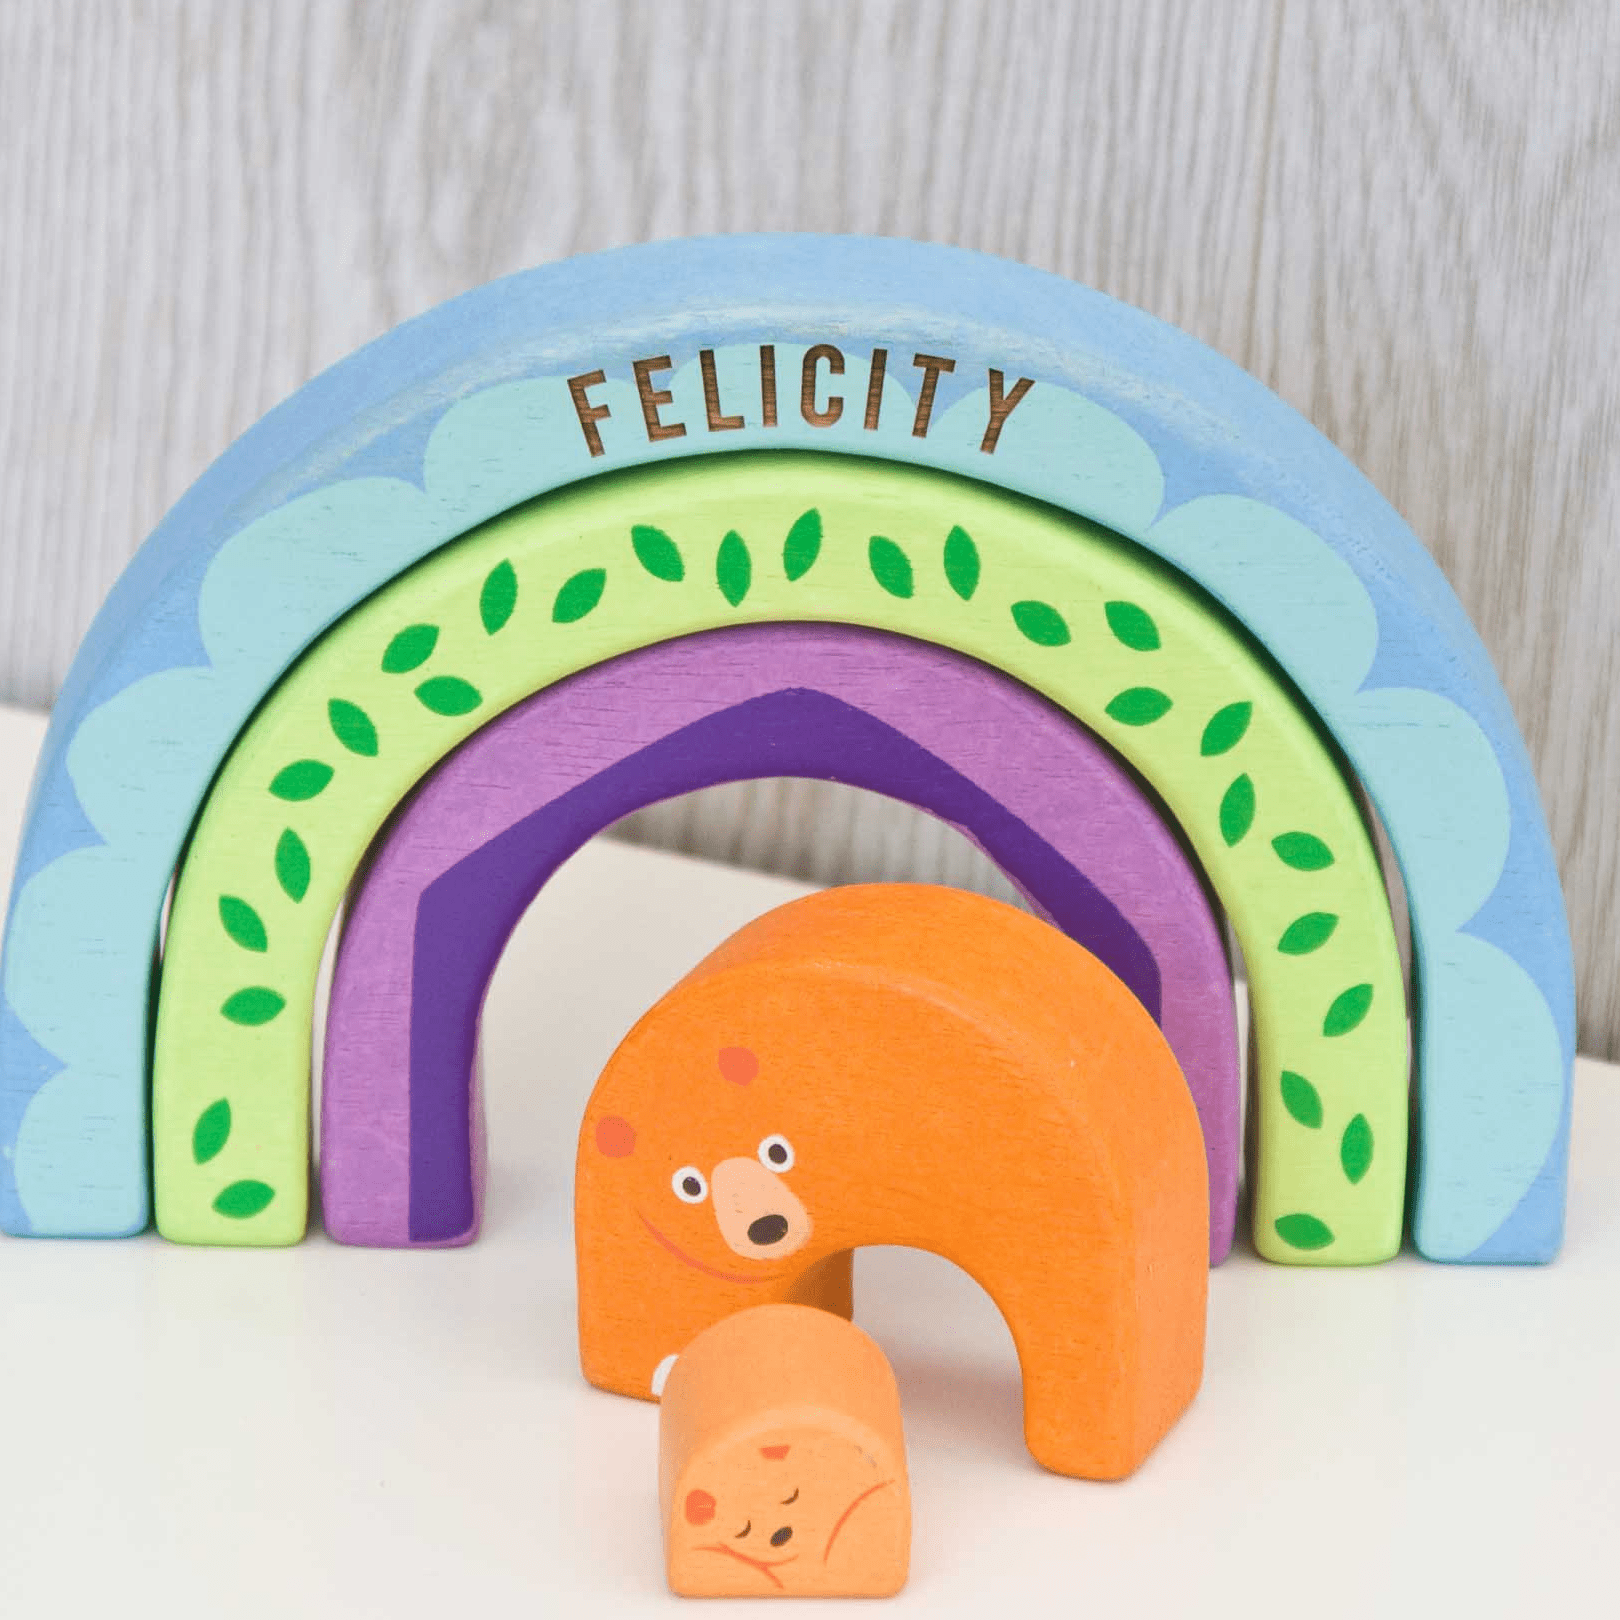 mummy-bear-tunnel-puzzel-personalised-toy-19634-p.png